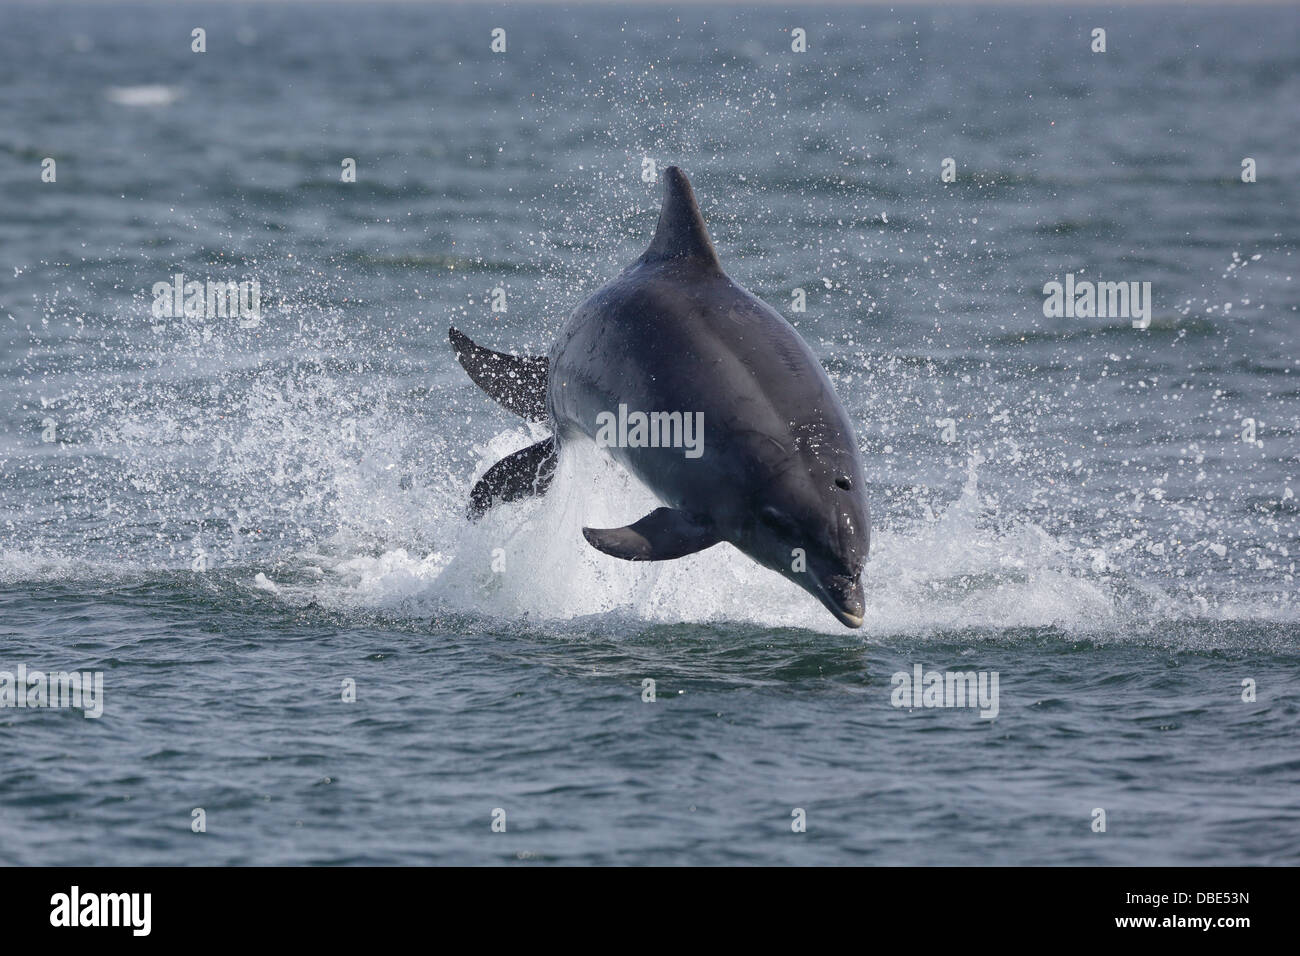 One Bottle-nosed Dolphin leaping out of the water at Chanonry Point - Stock Image